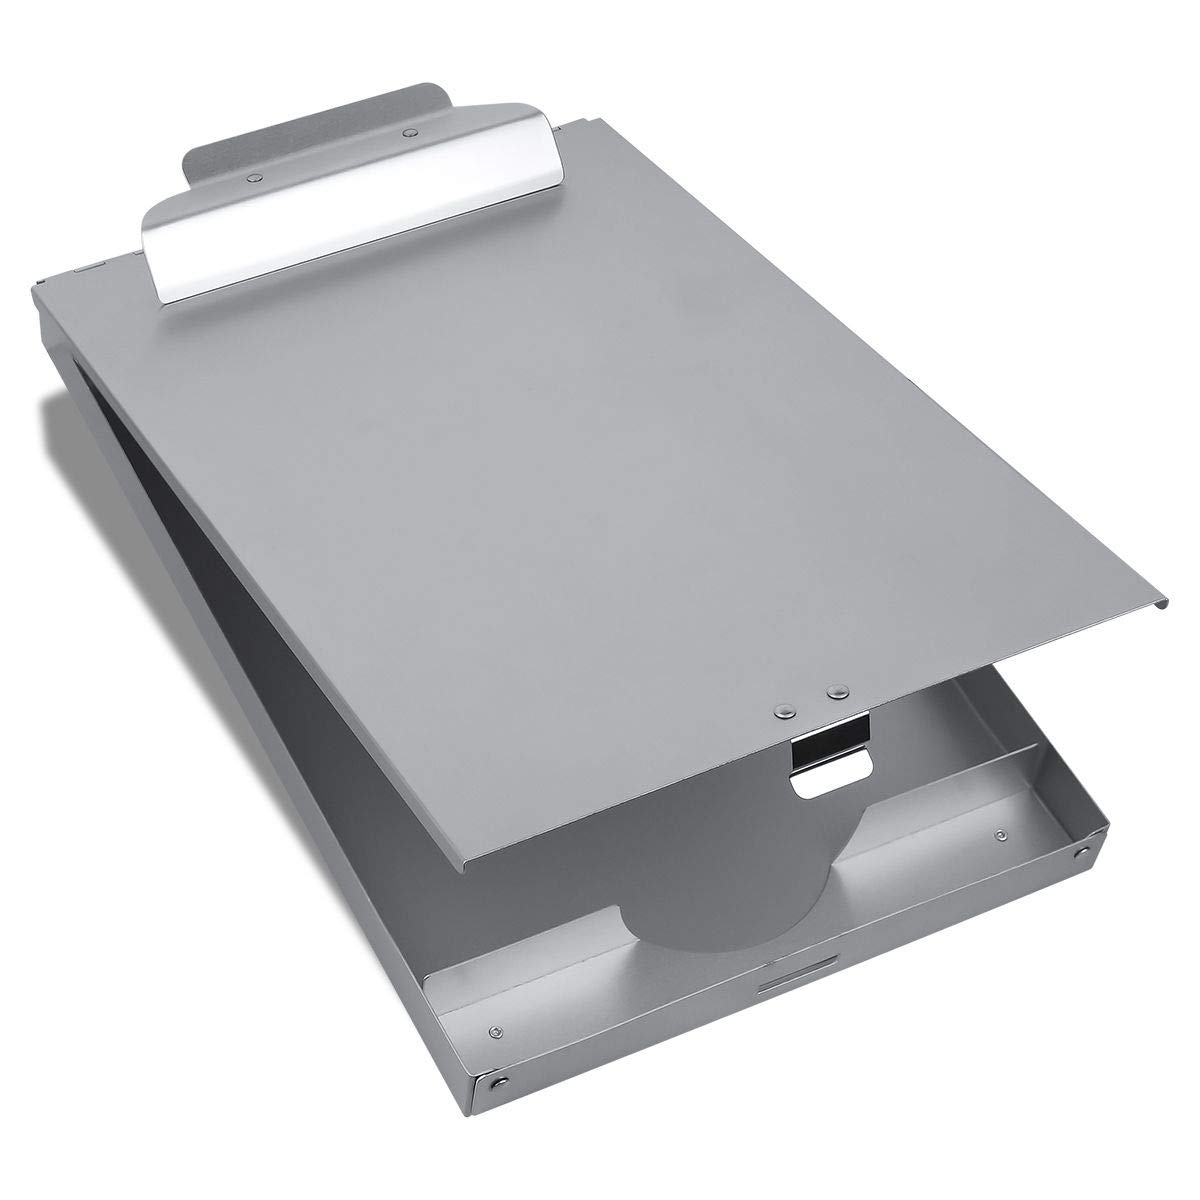 Metal Clipboard with Storage Form Holder Portfolio Aluminum Metal Binder with High Capacity Clip Posse Box Self Locking Latch -14 x 9.5 inch Size Clipboard for Office Business Professionals Stationer